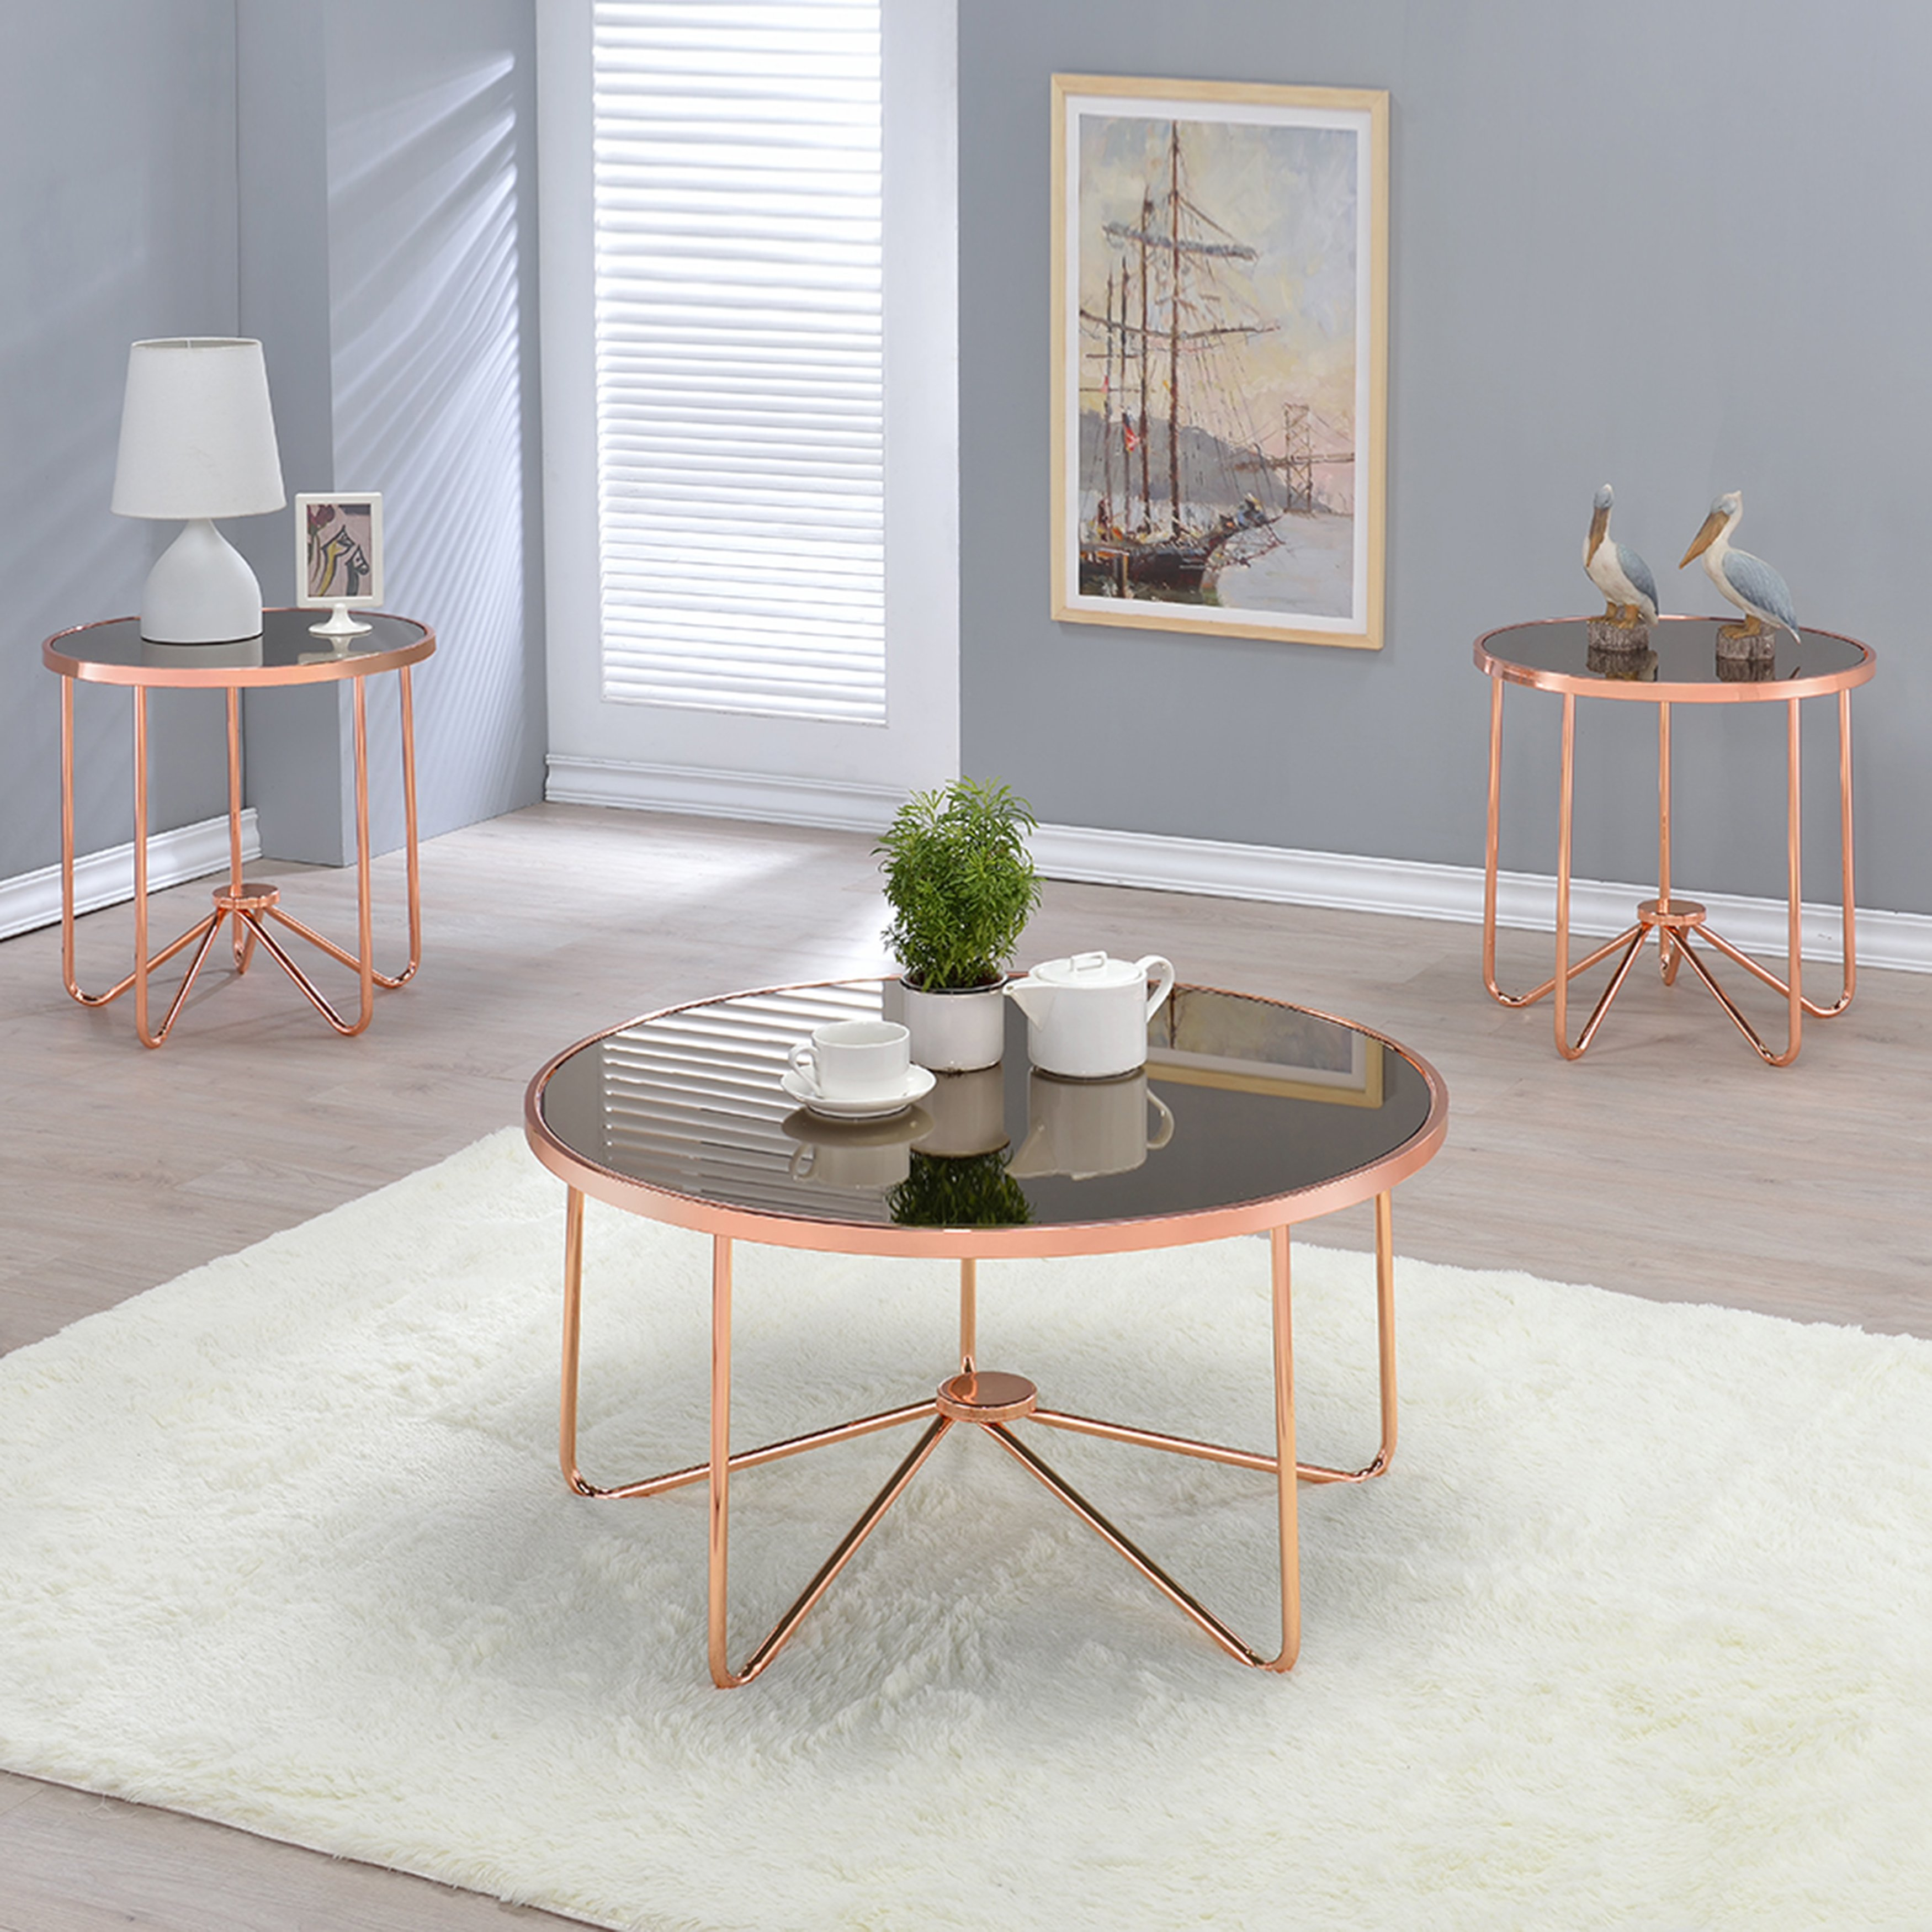 acme furniture alivia rose gold metal and glass accent tables table cherry dining room vintage wood side tall lamps rustic chic end antique mahogany groups white marble square